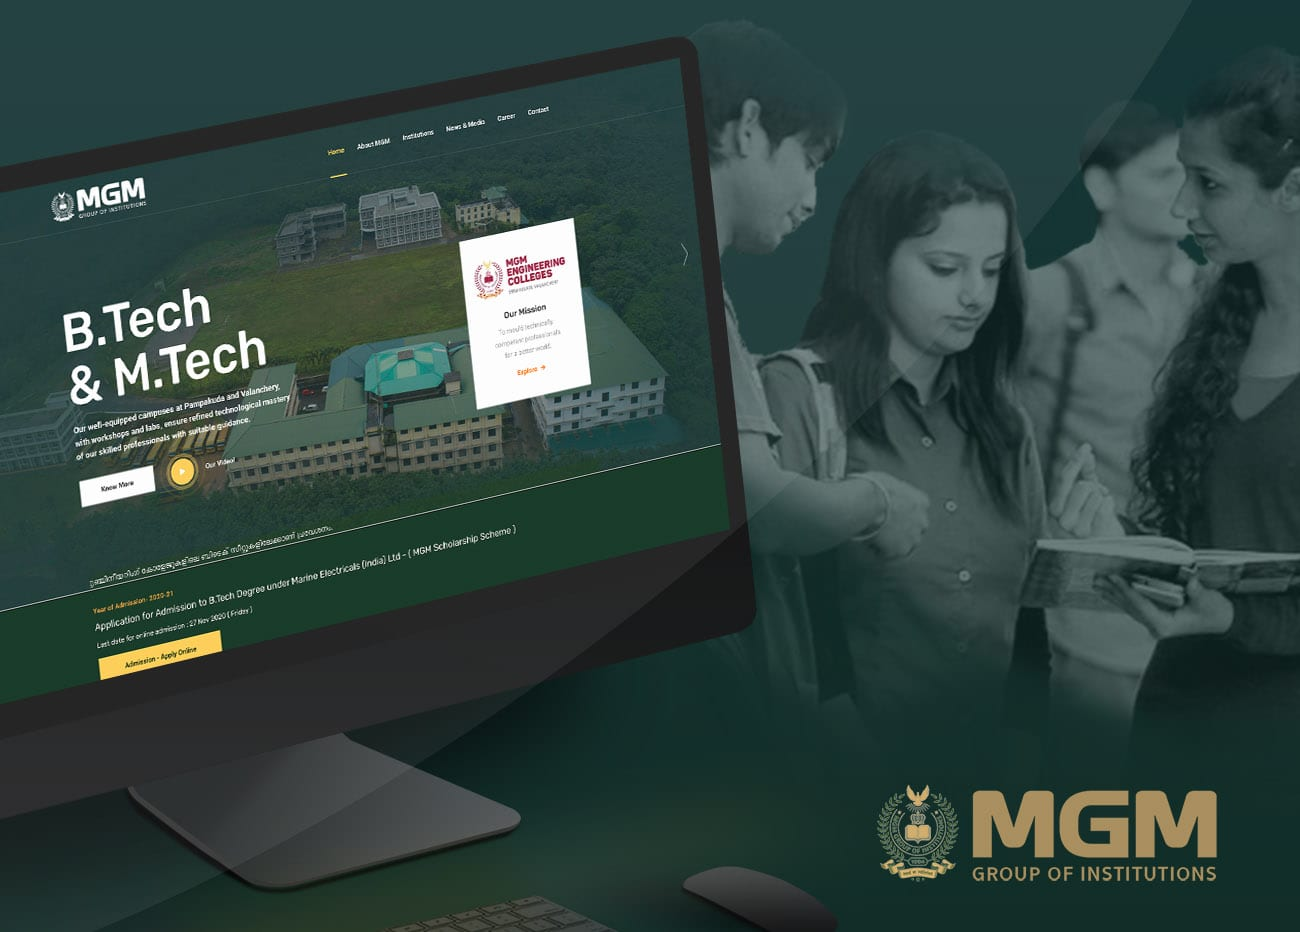 Website Development and Digital Marketing of MGM Group of Institutions